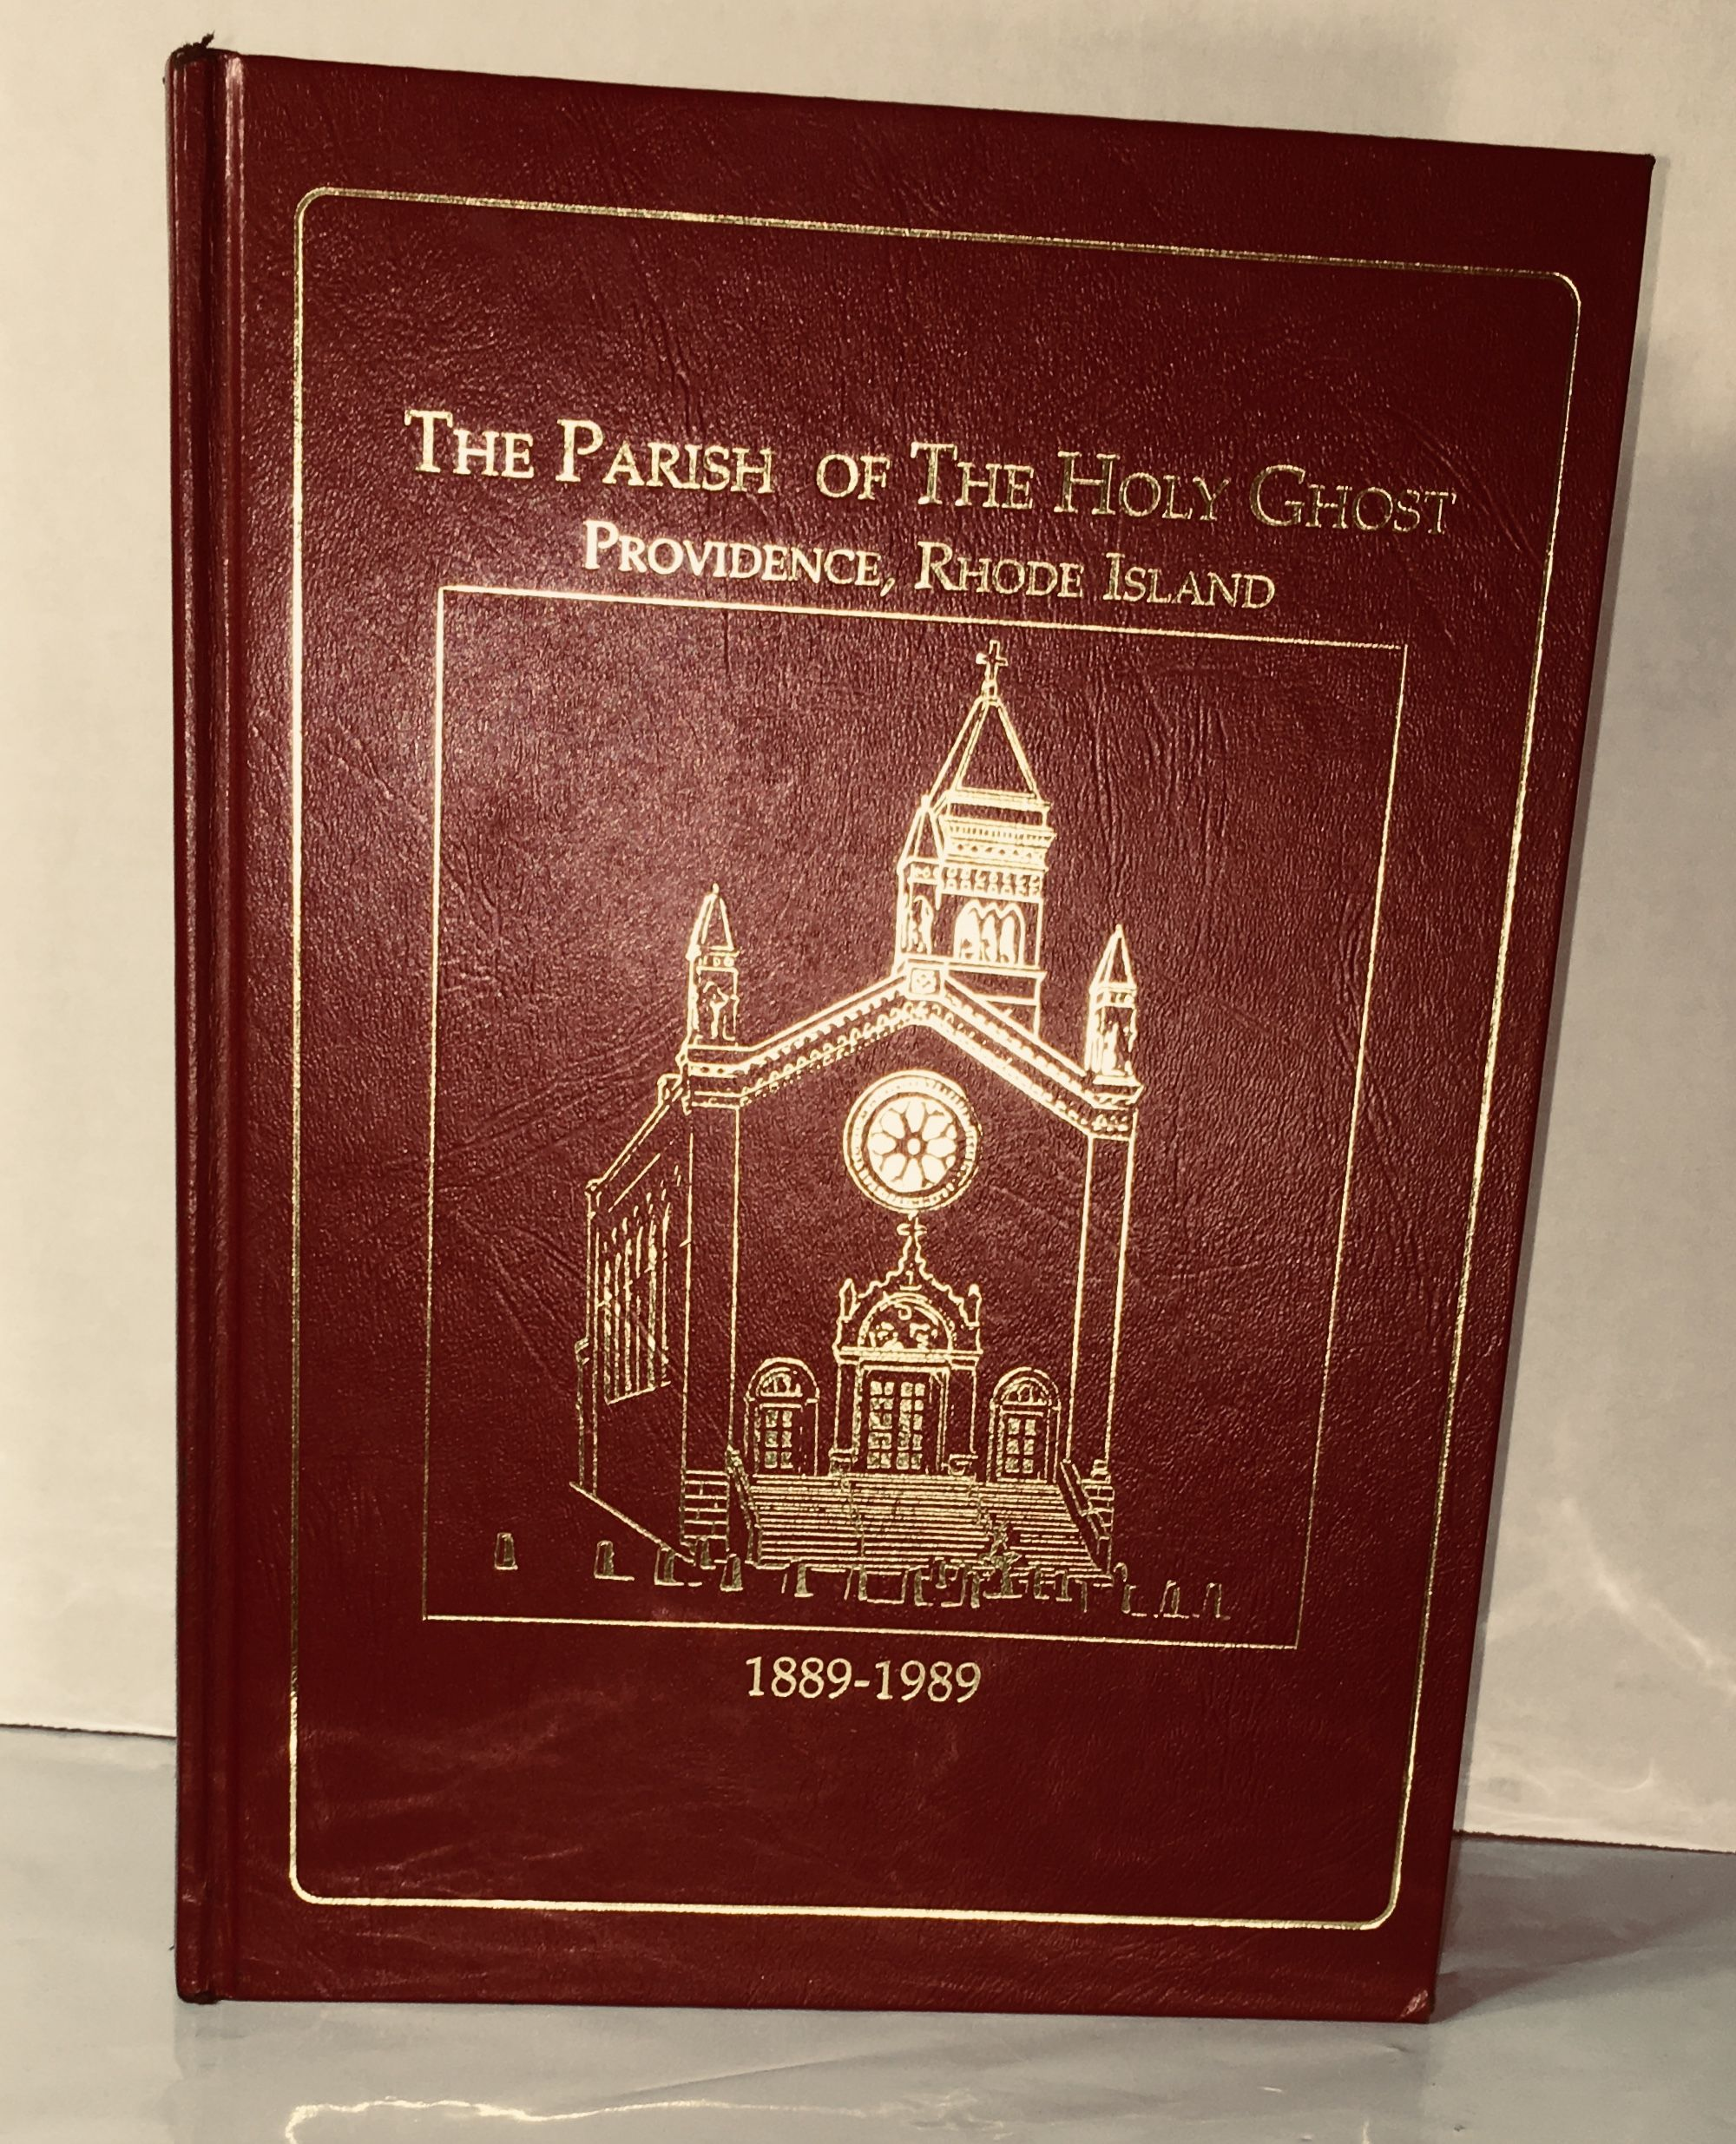 Parish of the Holy Ghost Providence, Rhode Island 1889-1989 Centennial History, Church Staff [Josephine Baccari]